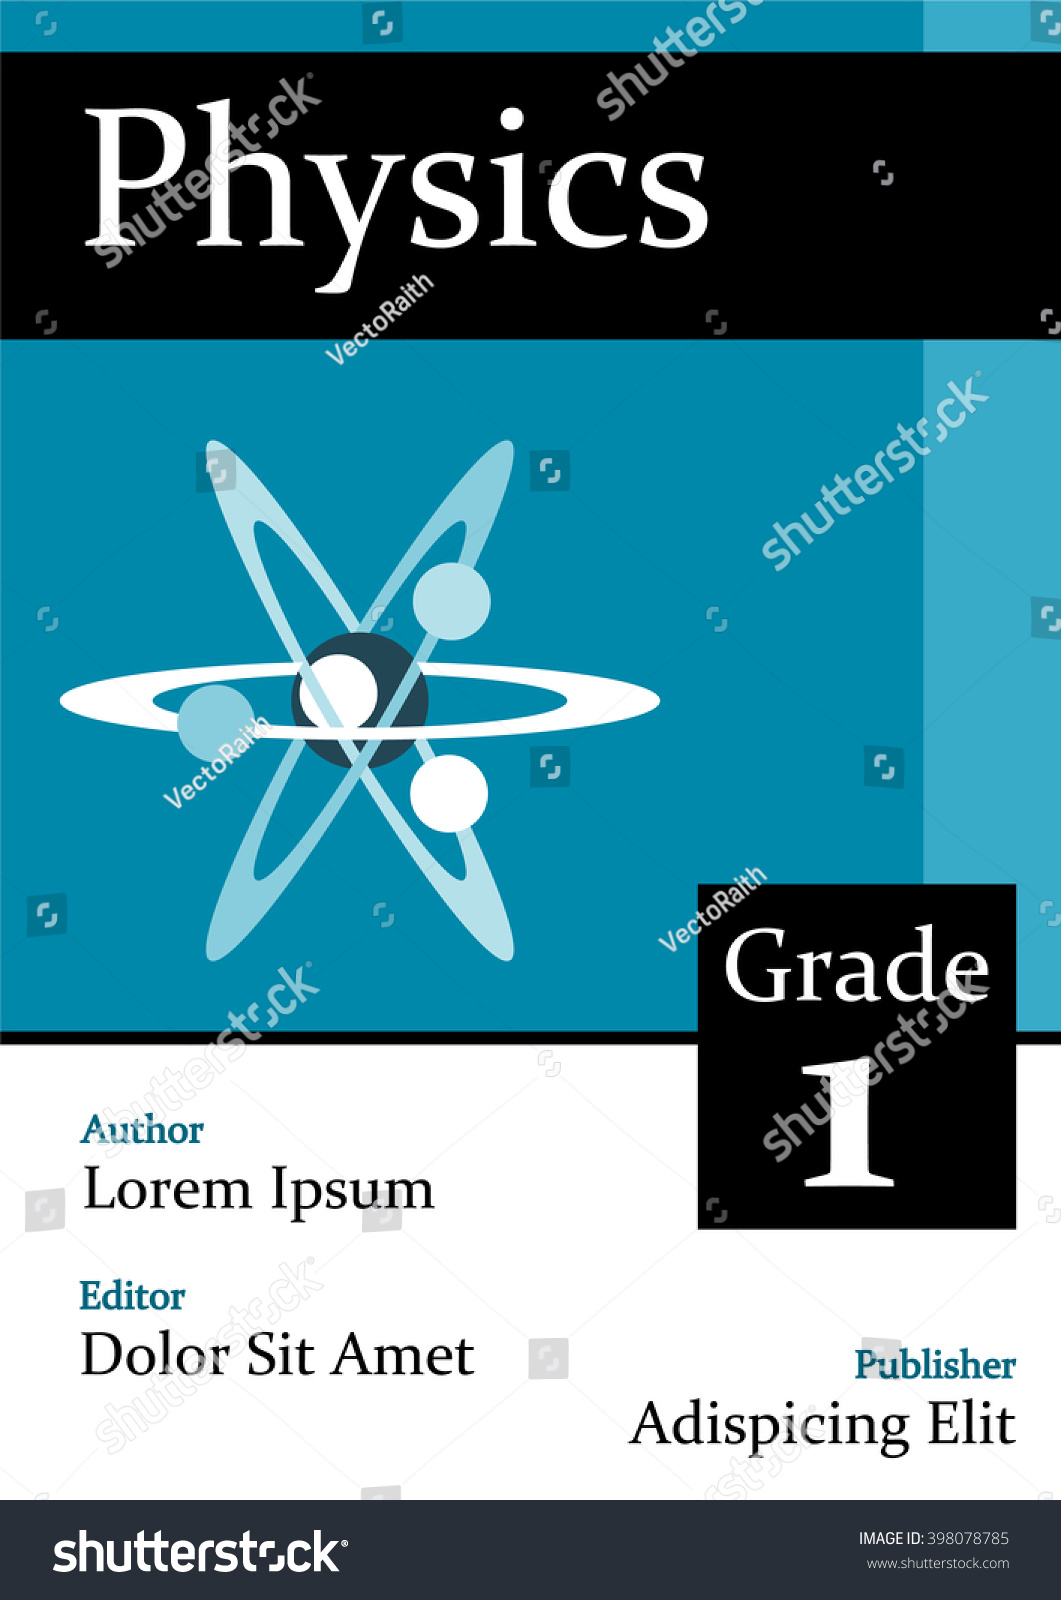 Illustrated Book Cover Vector ~ A physics book cover flat style stock vector royalty free